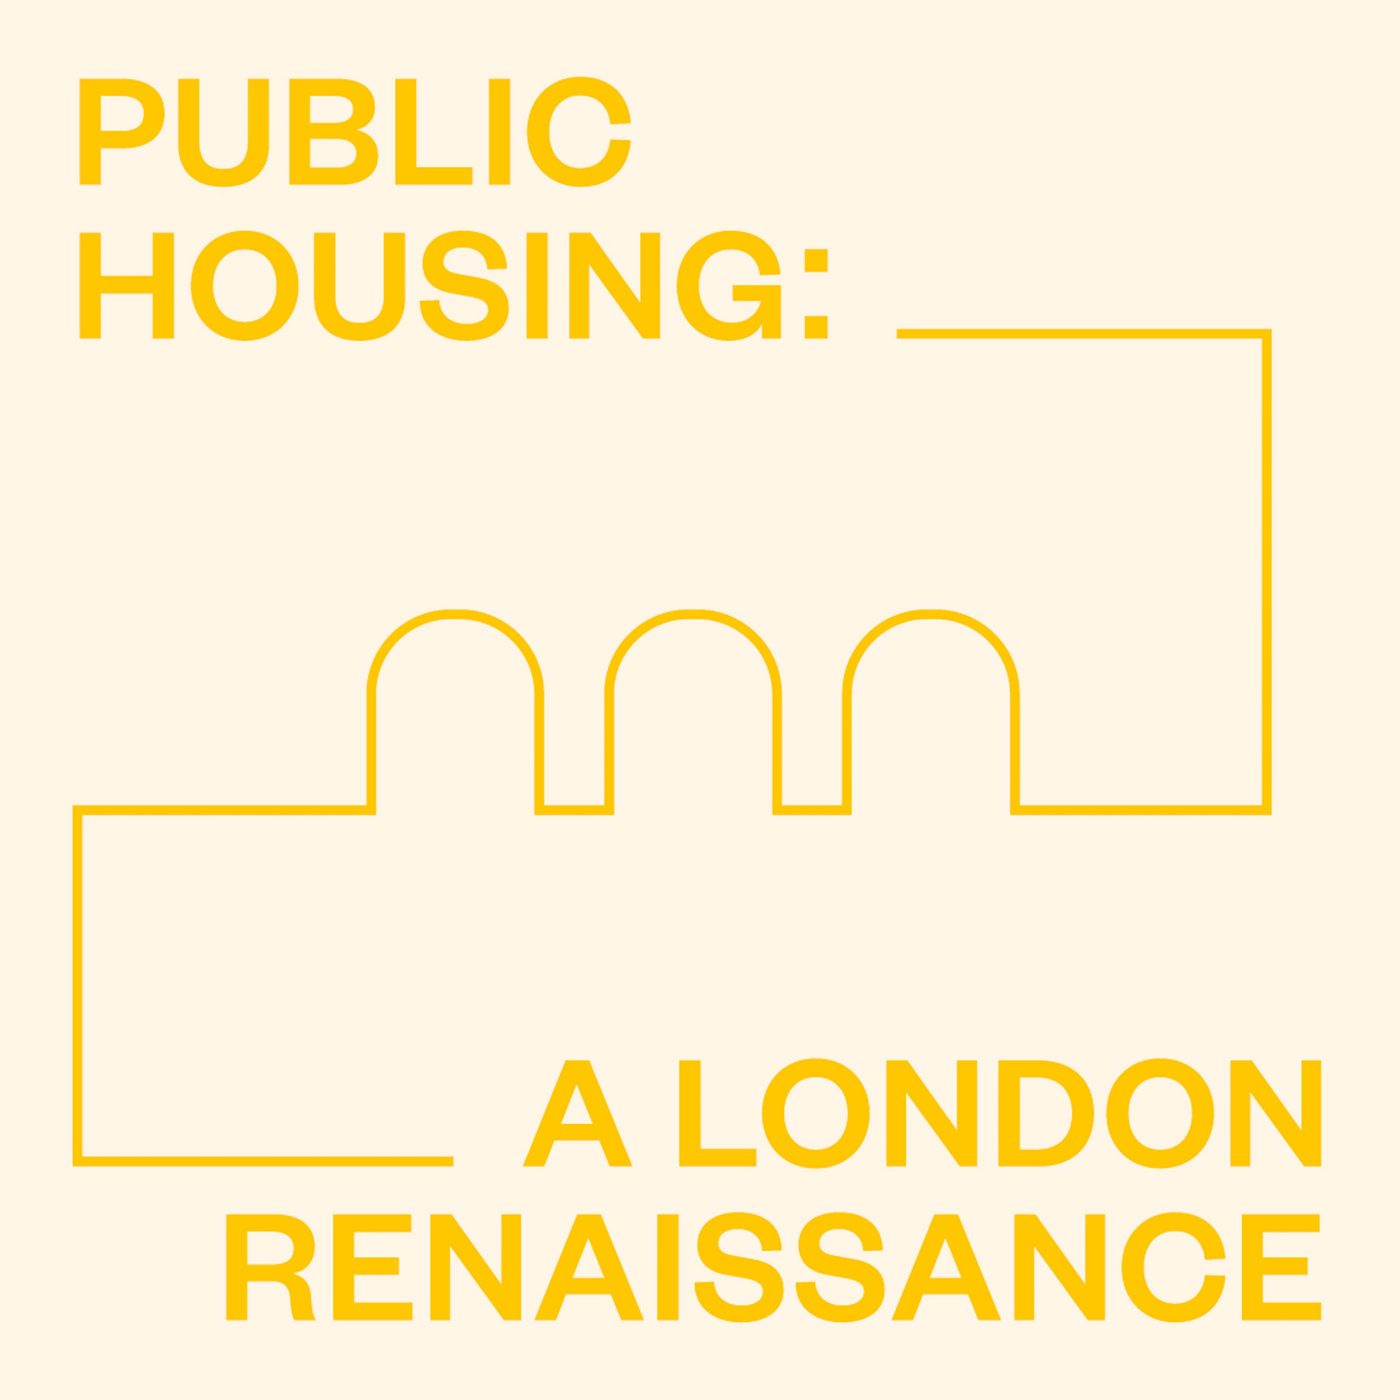 Nla Public Housing A London Renaissance